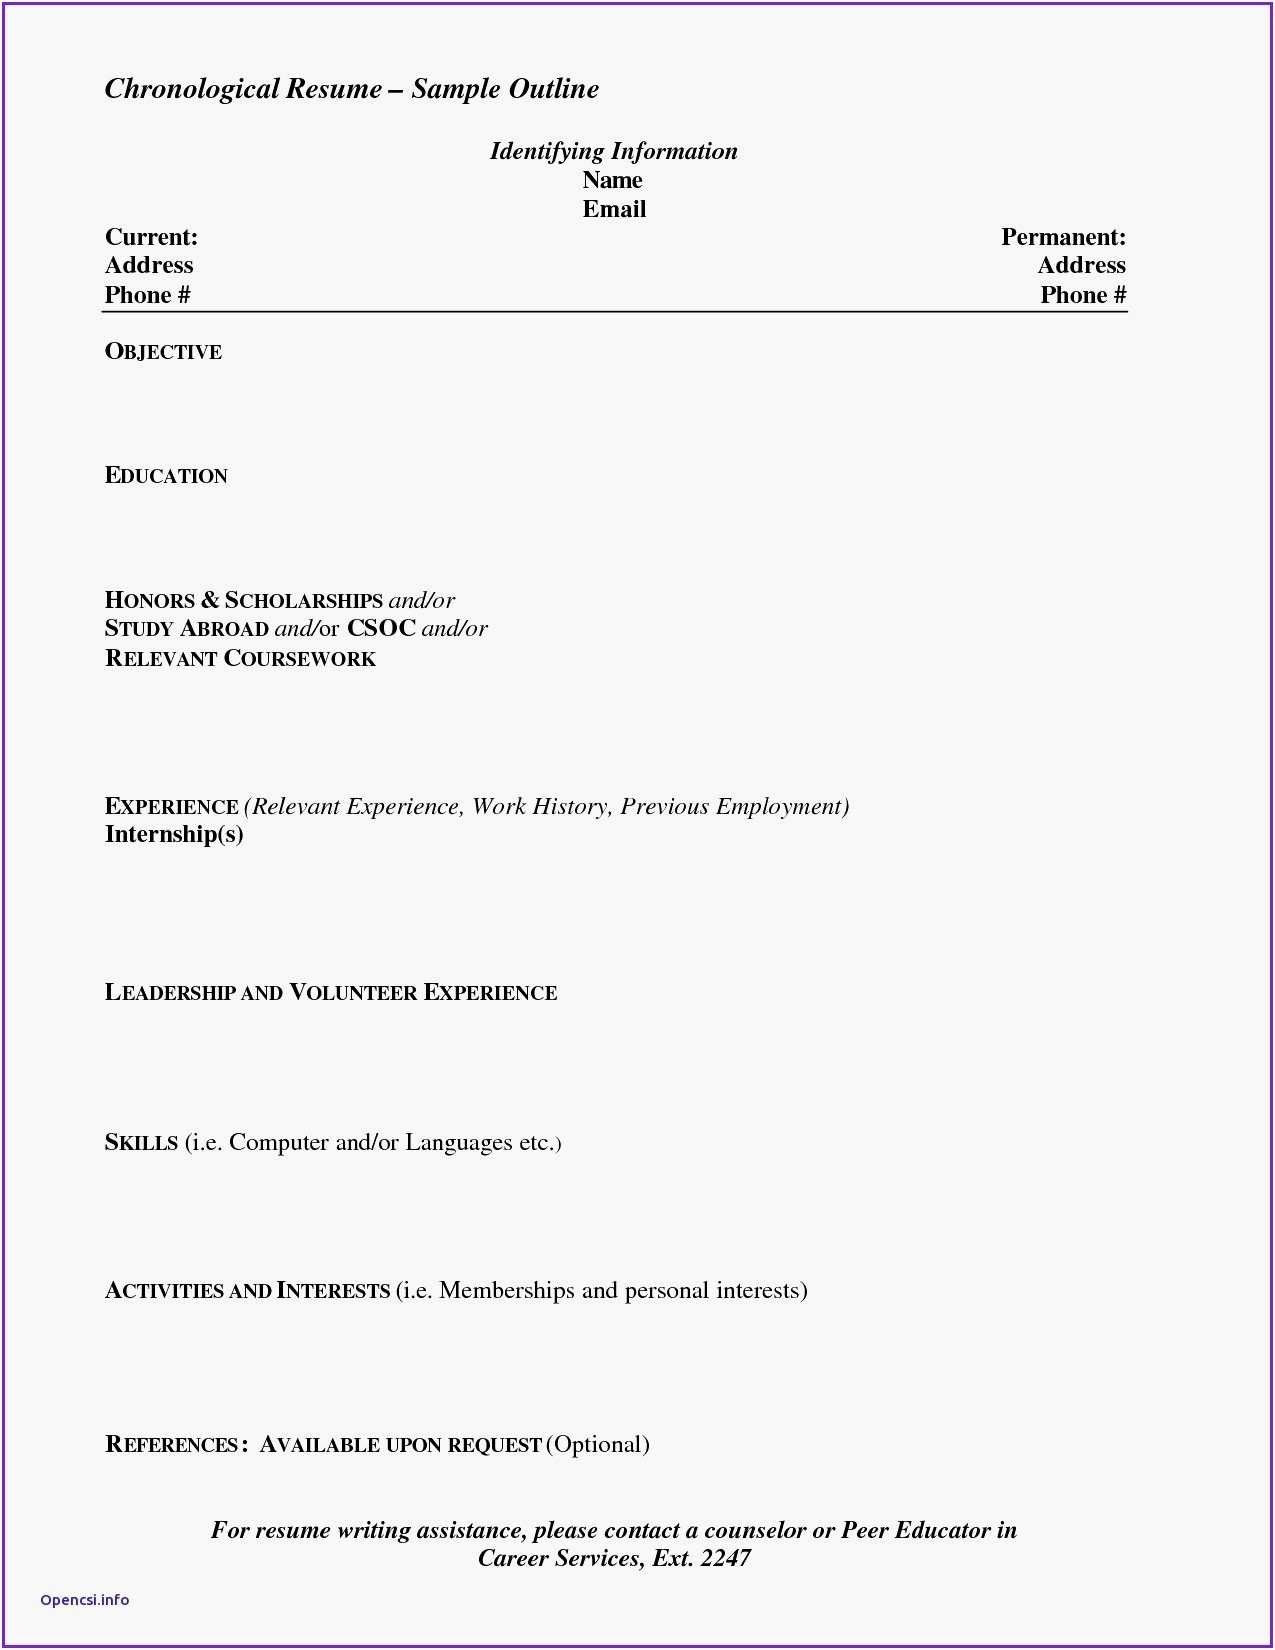 Resume Format Indeed Chronological Resume Job Resume Business